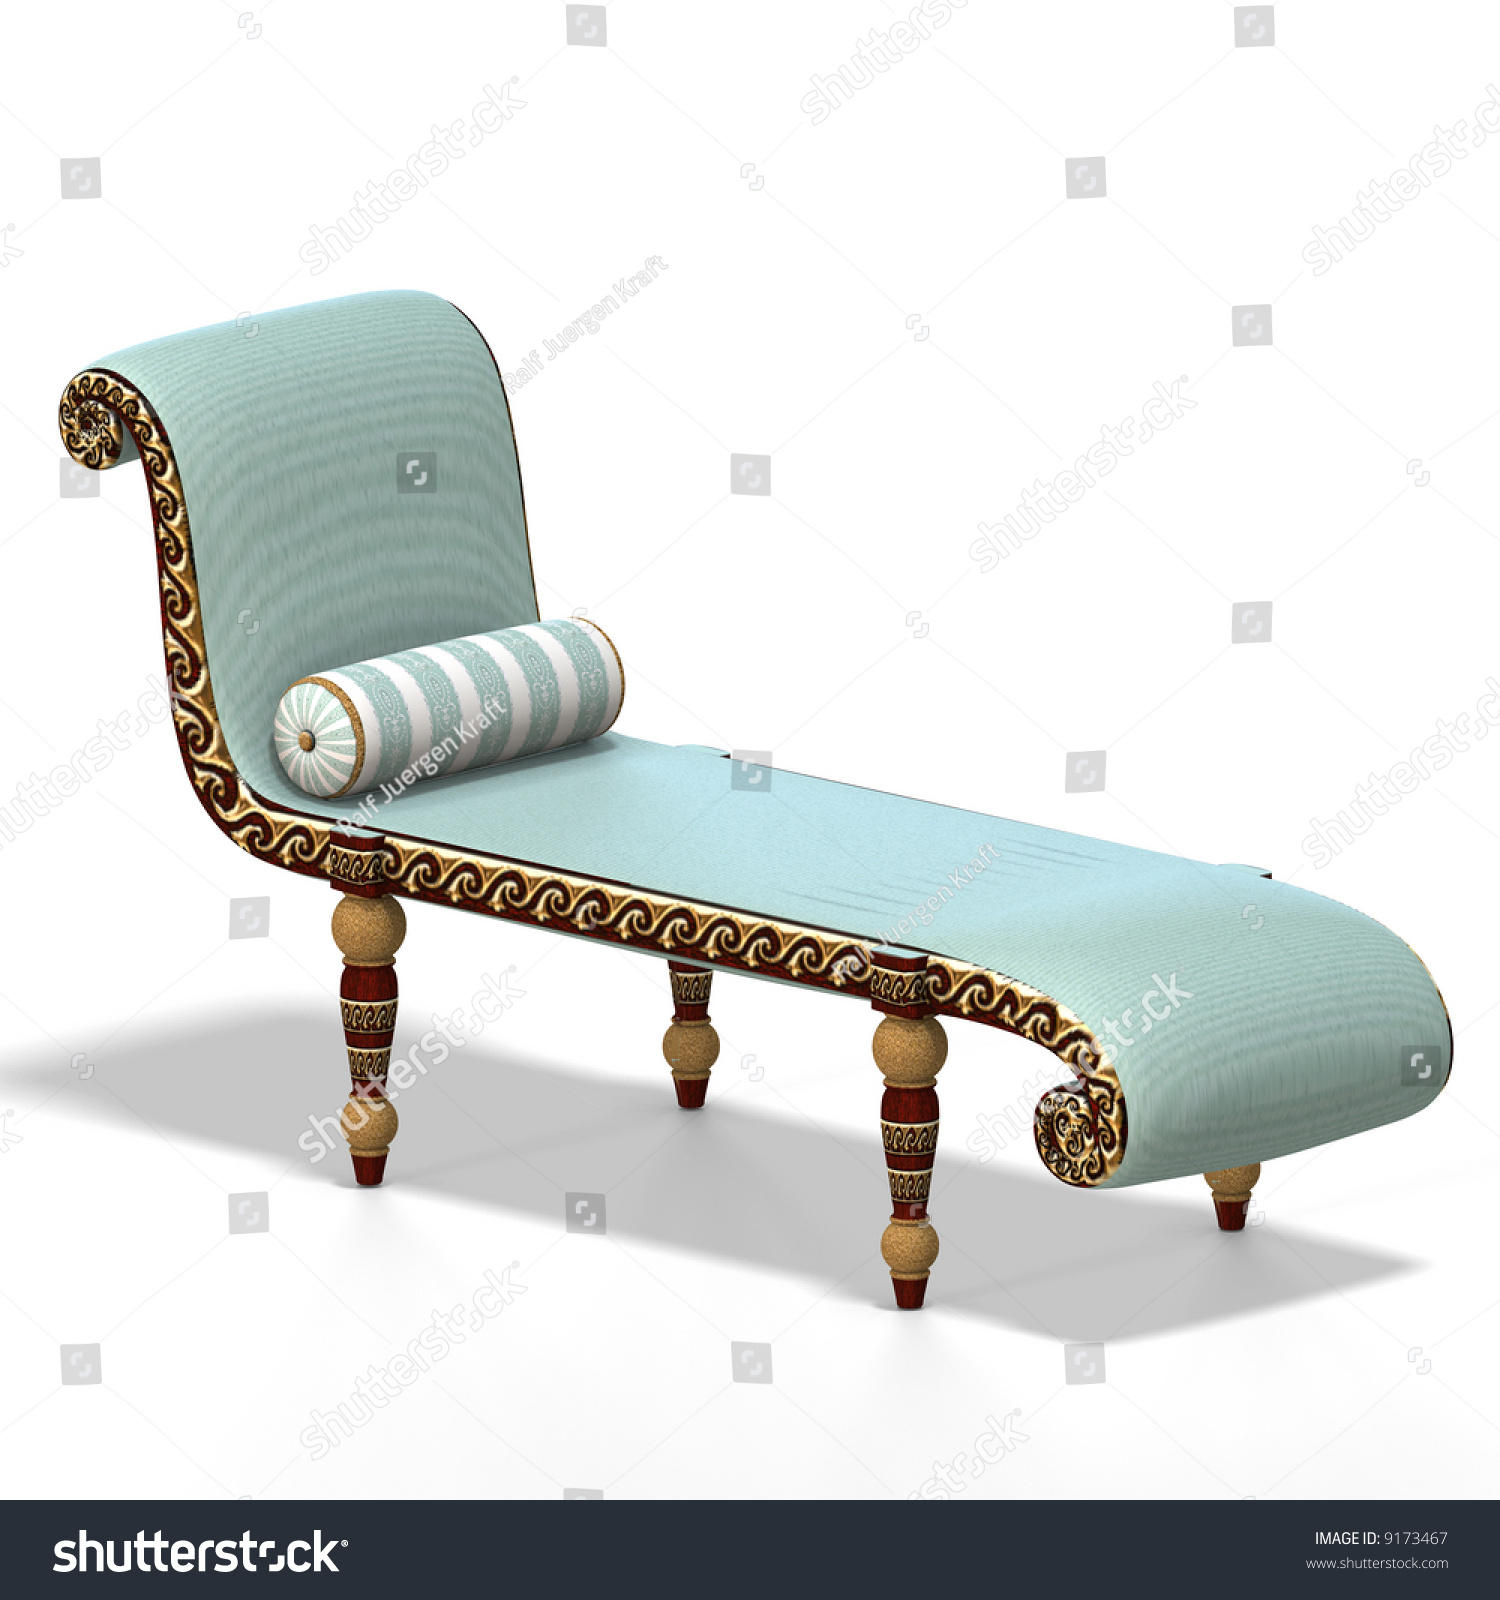 old fashioned couch or sofa with Clipping Path